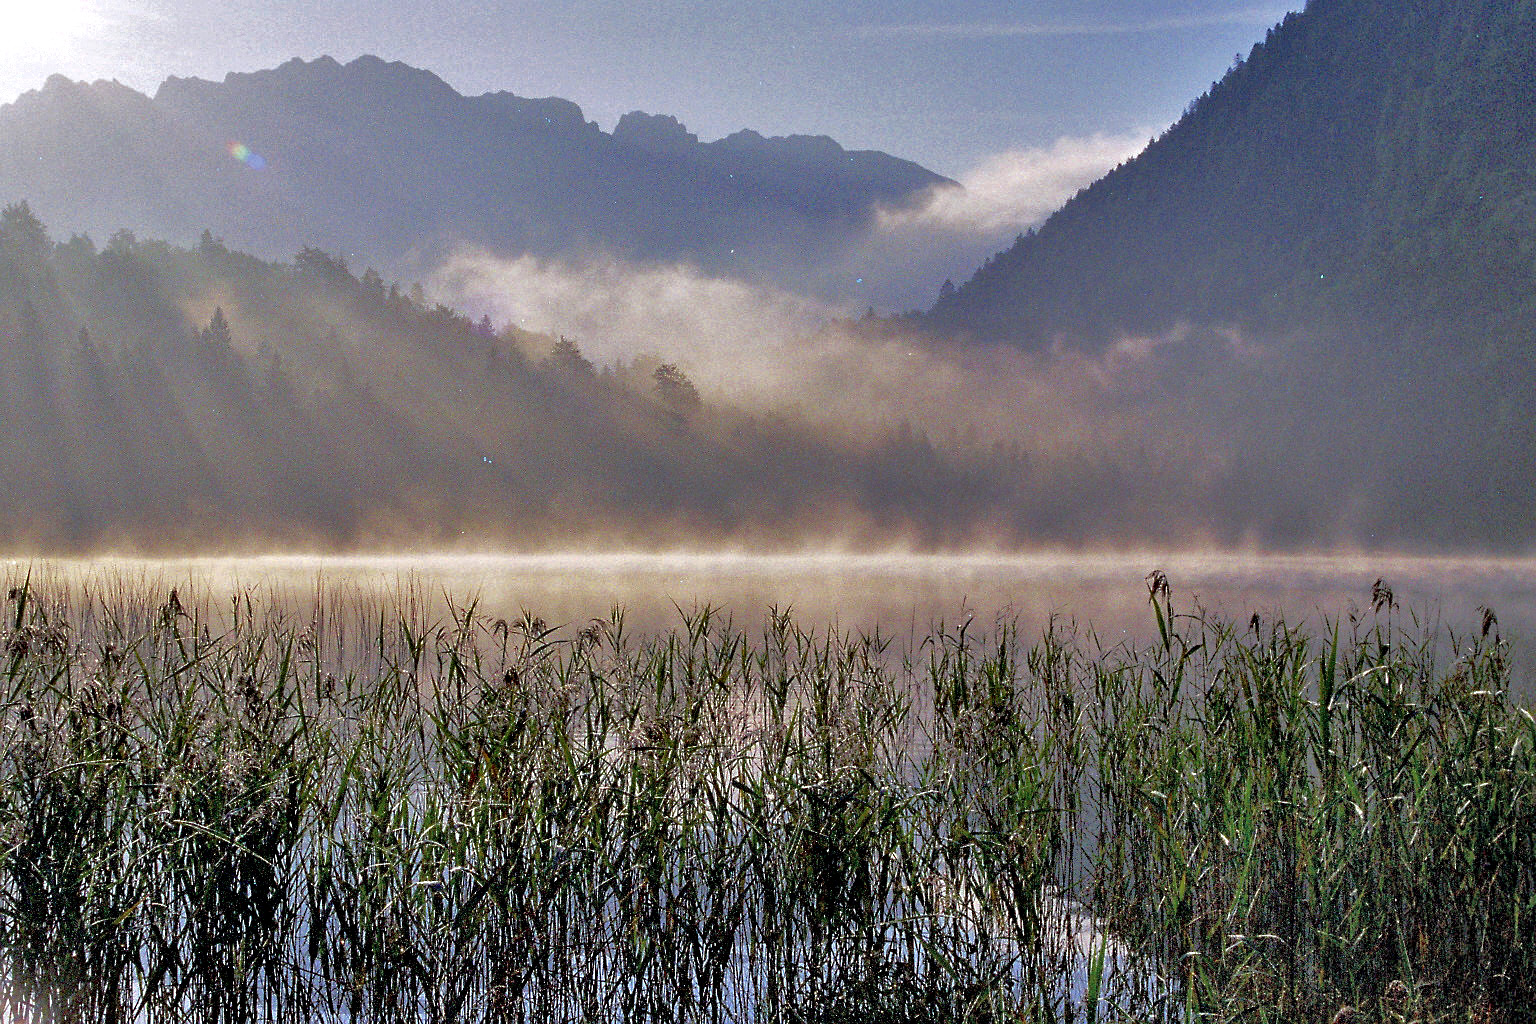 ferchensee am Morgen